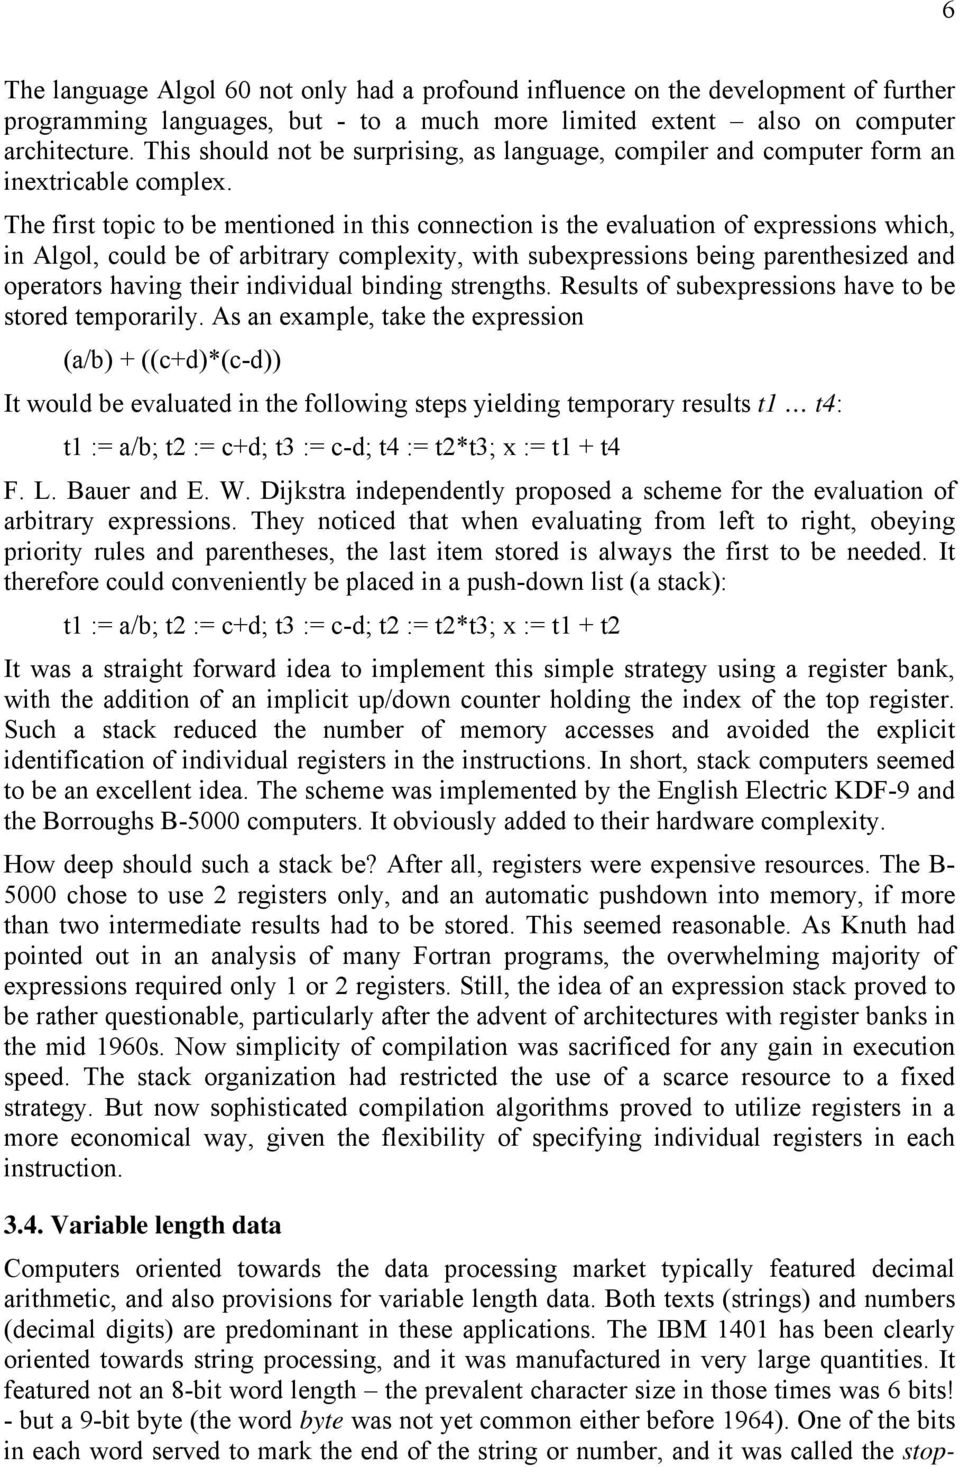 The first topic to be mentioned in this connection is the evaluation of expressions which, in Algol, could be of arbitrary complexity, with subexpressions being parenthesized and operators having